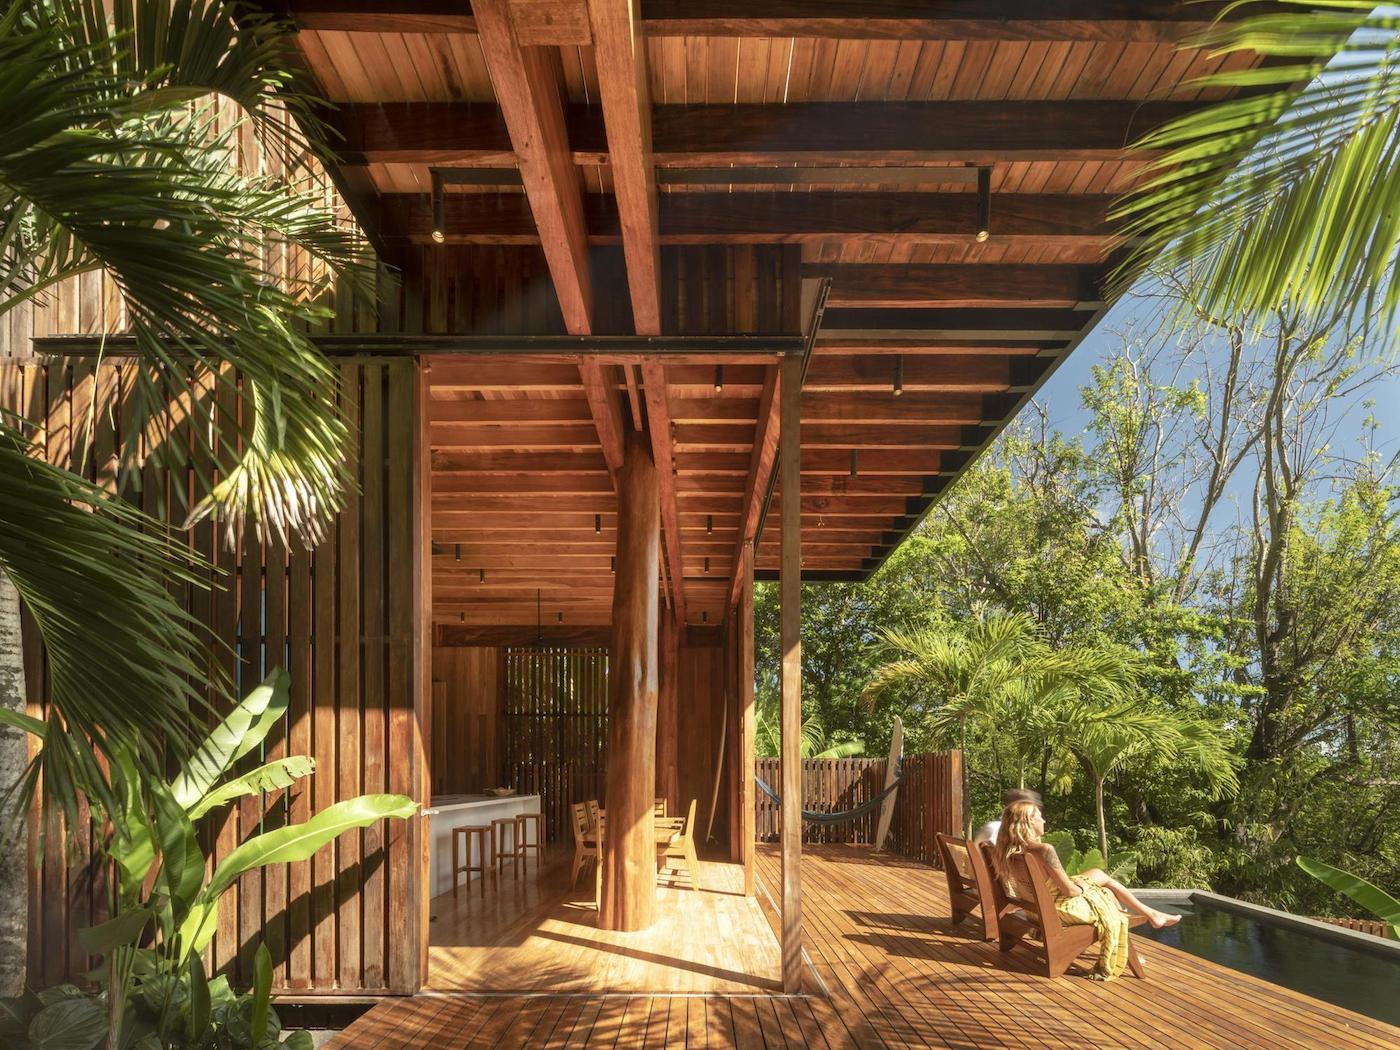 Couple sitting on timber deck of timber home overlooking pool